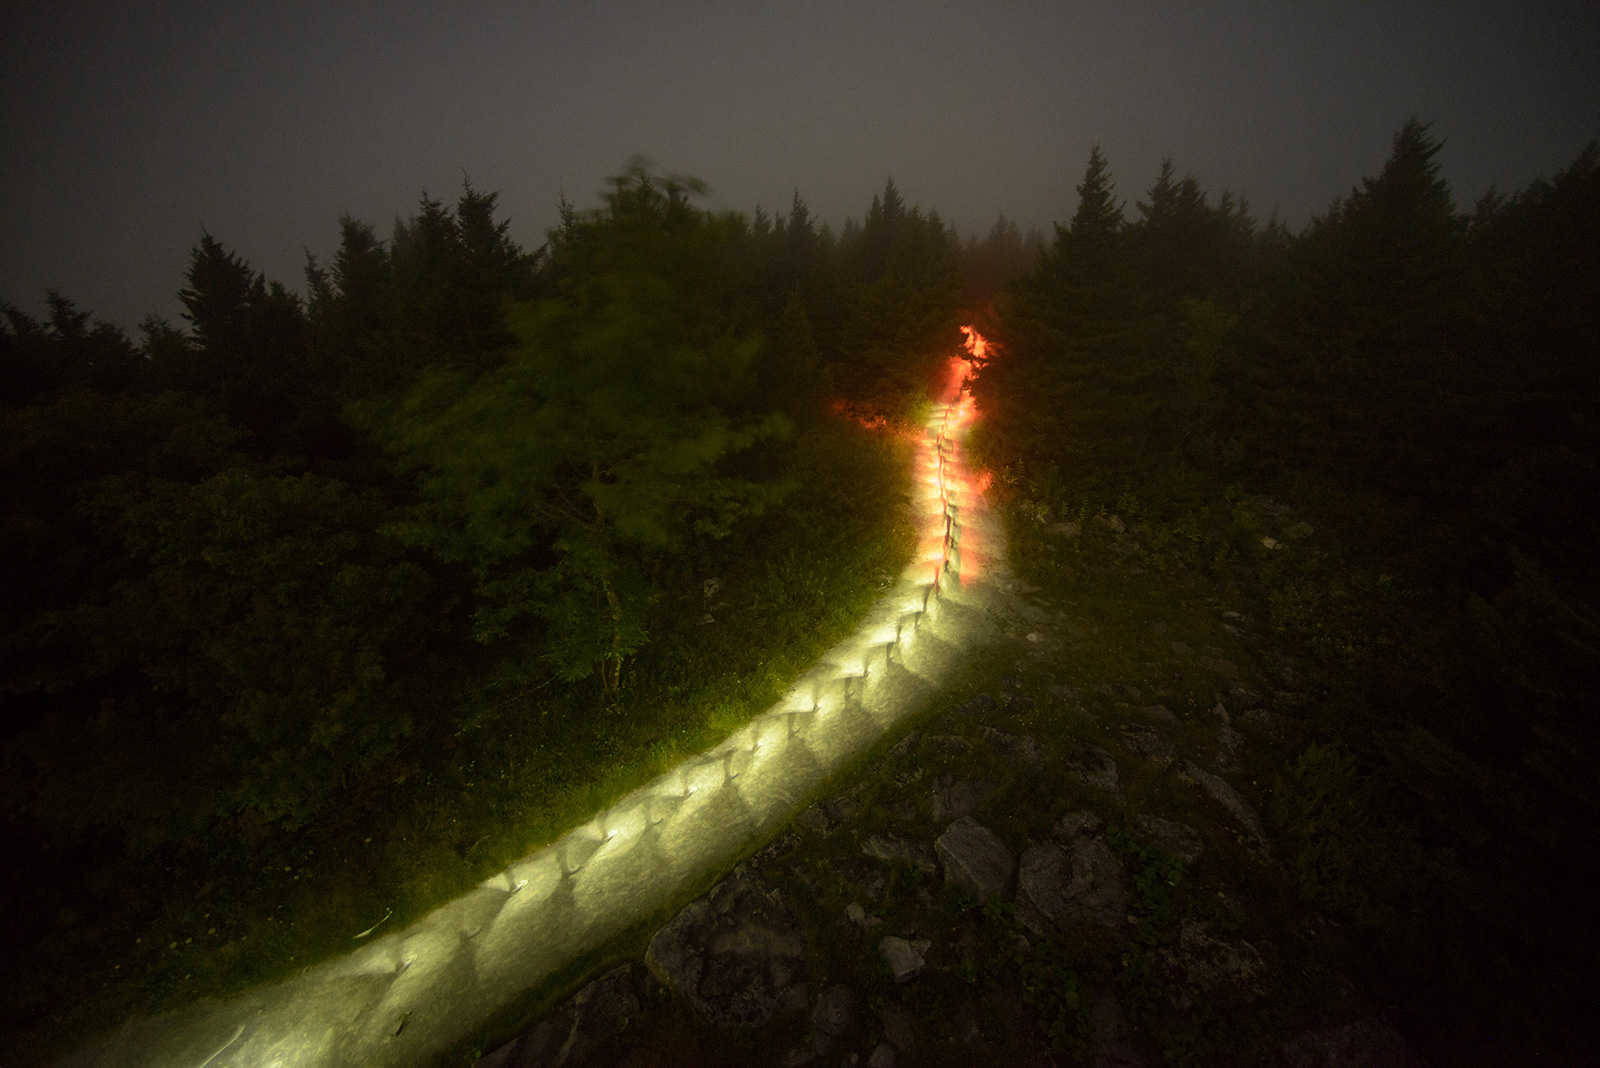 Light trail made by hikers going up a mountain in the dark.